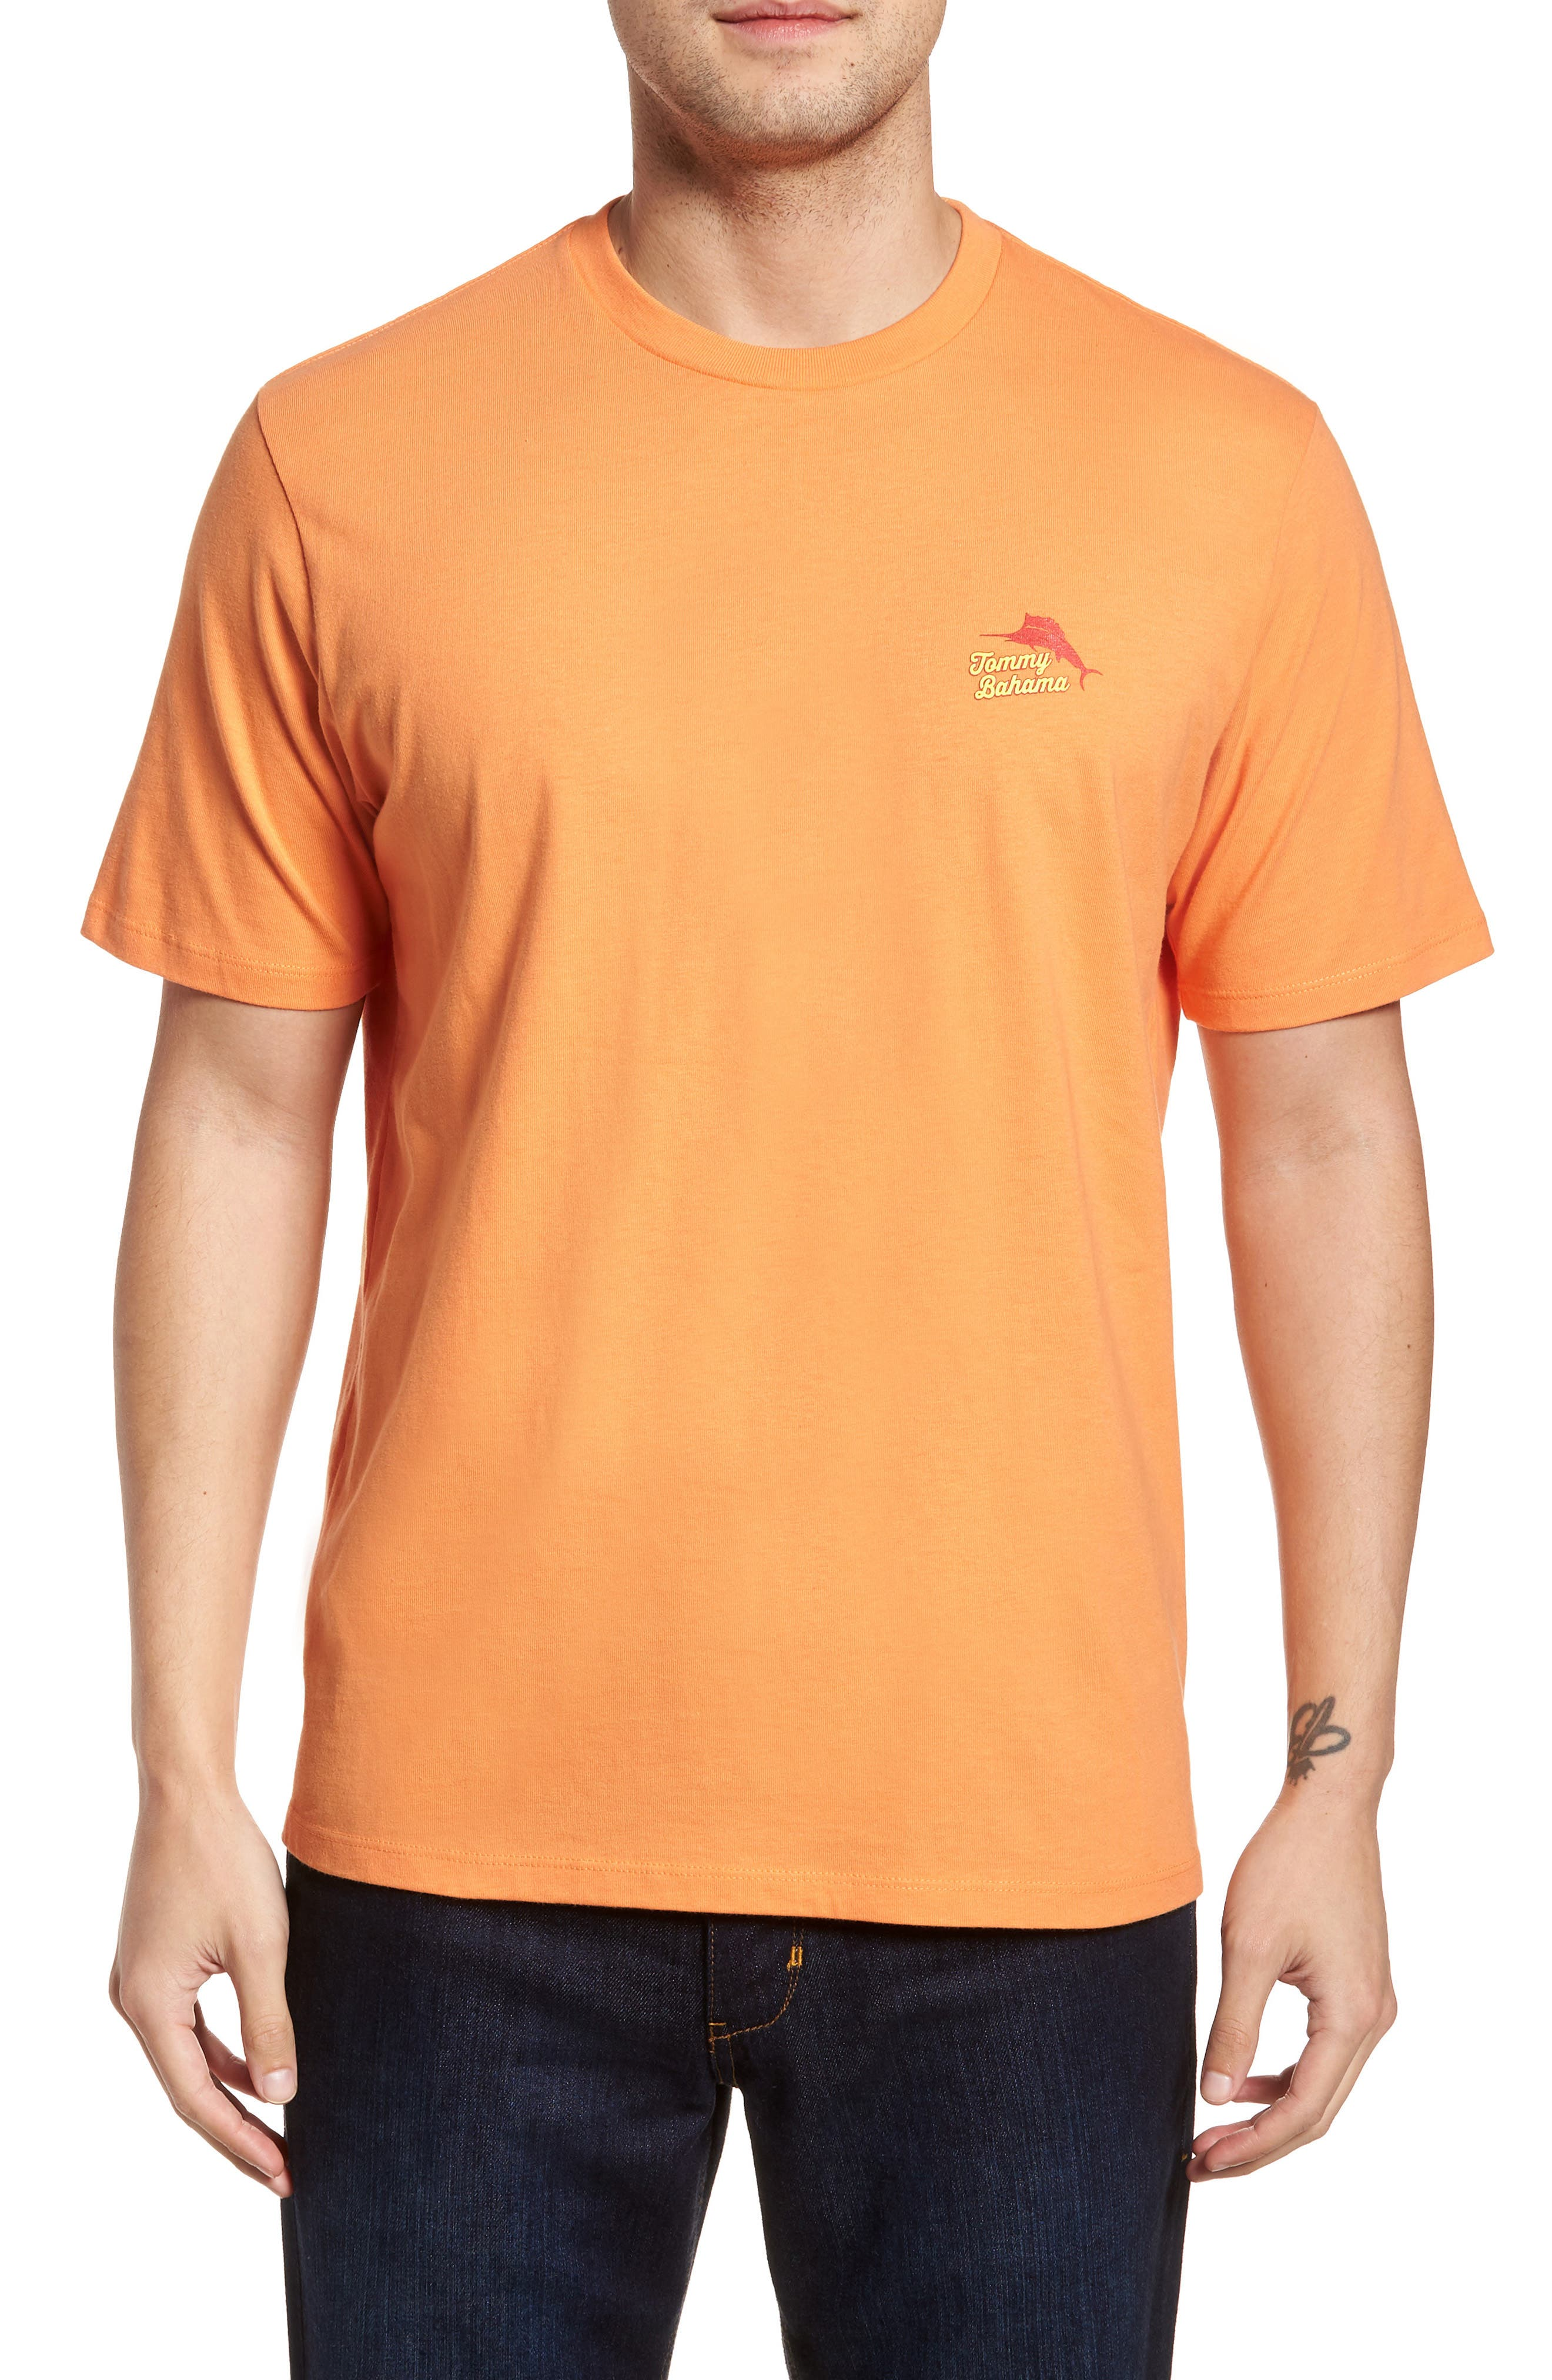 Ryes to the Occasion T-Shirt,                         Main,                         color, 800